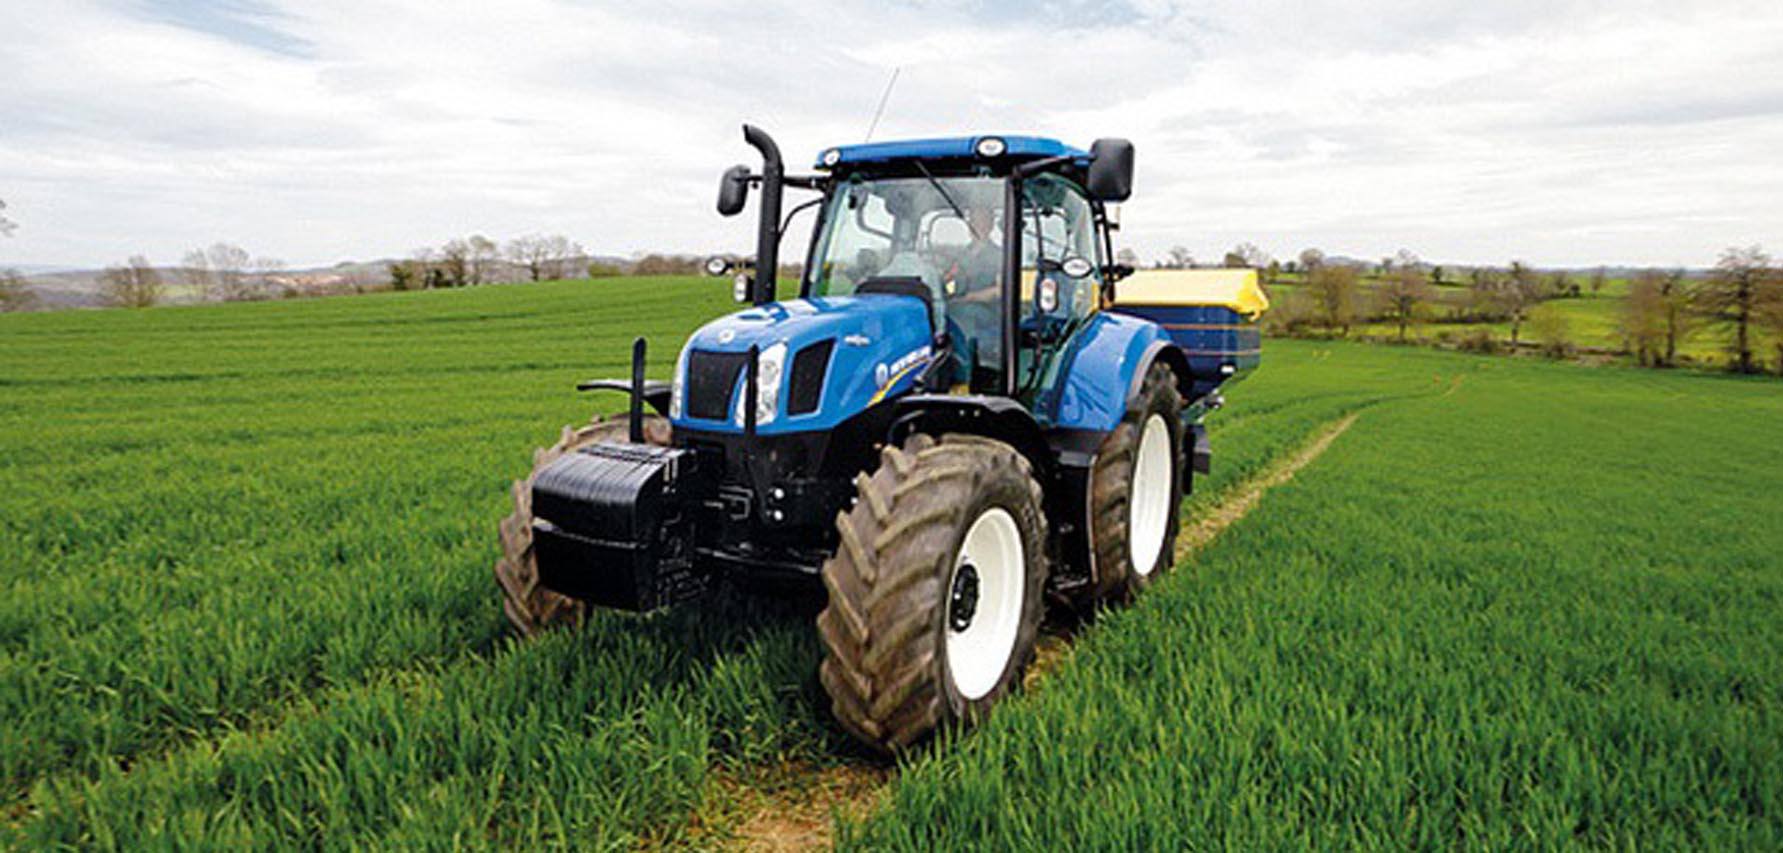 New Holland Dealership : New holland announces dealer in chichester area